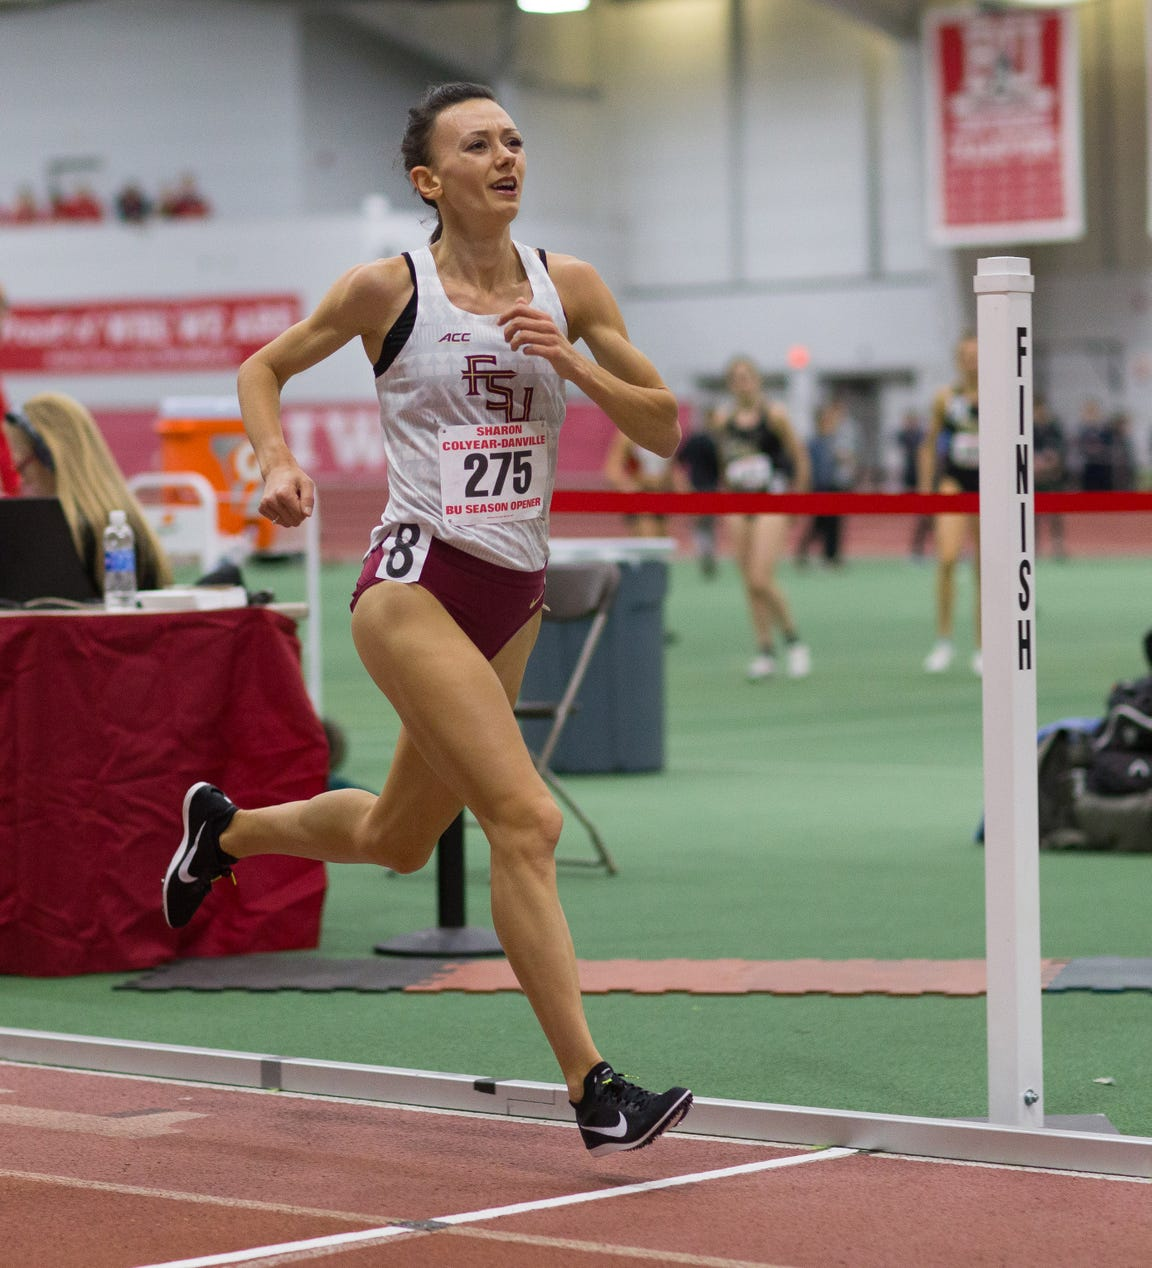 Florida State senior distance runner Militsa Mircheva's transition from Olympian to collegiate athlete was far from a breeze.